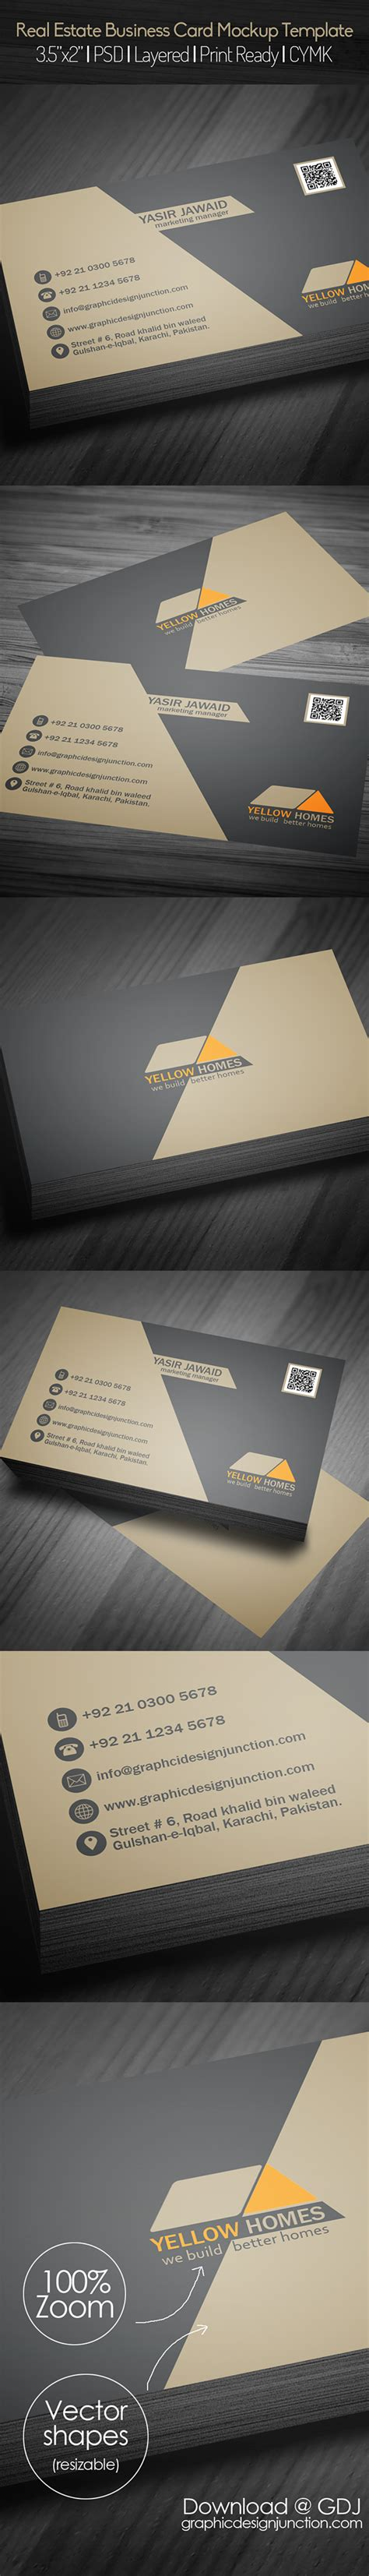 business card template psd behance real estate business card psd template freebie on behance